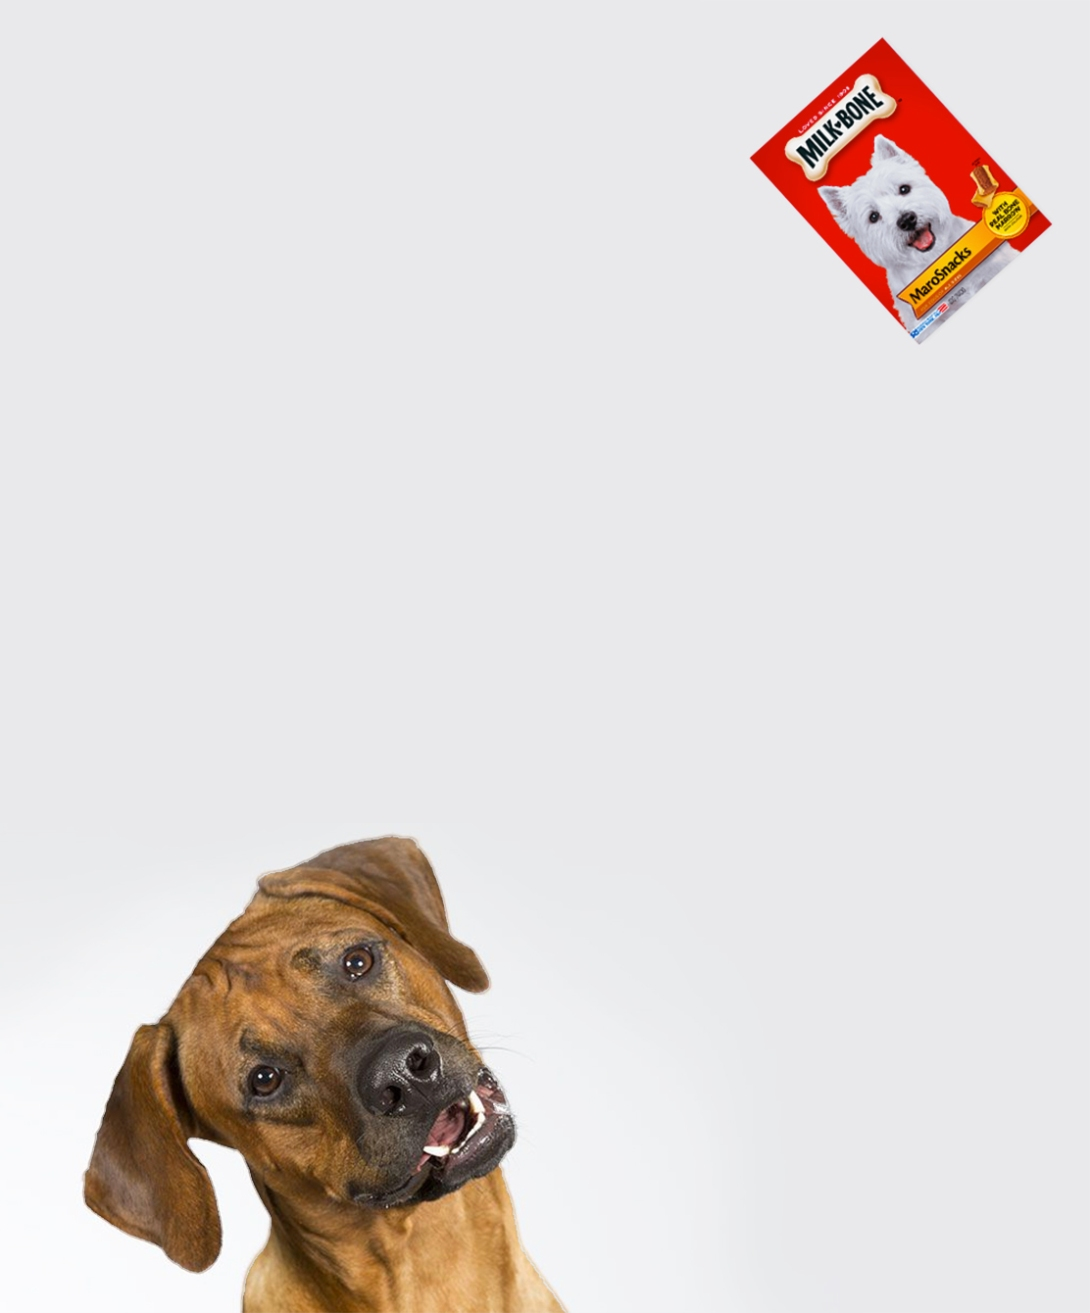 A rough advertising idea for a dog biscuits brand - cocked head